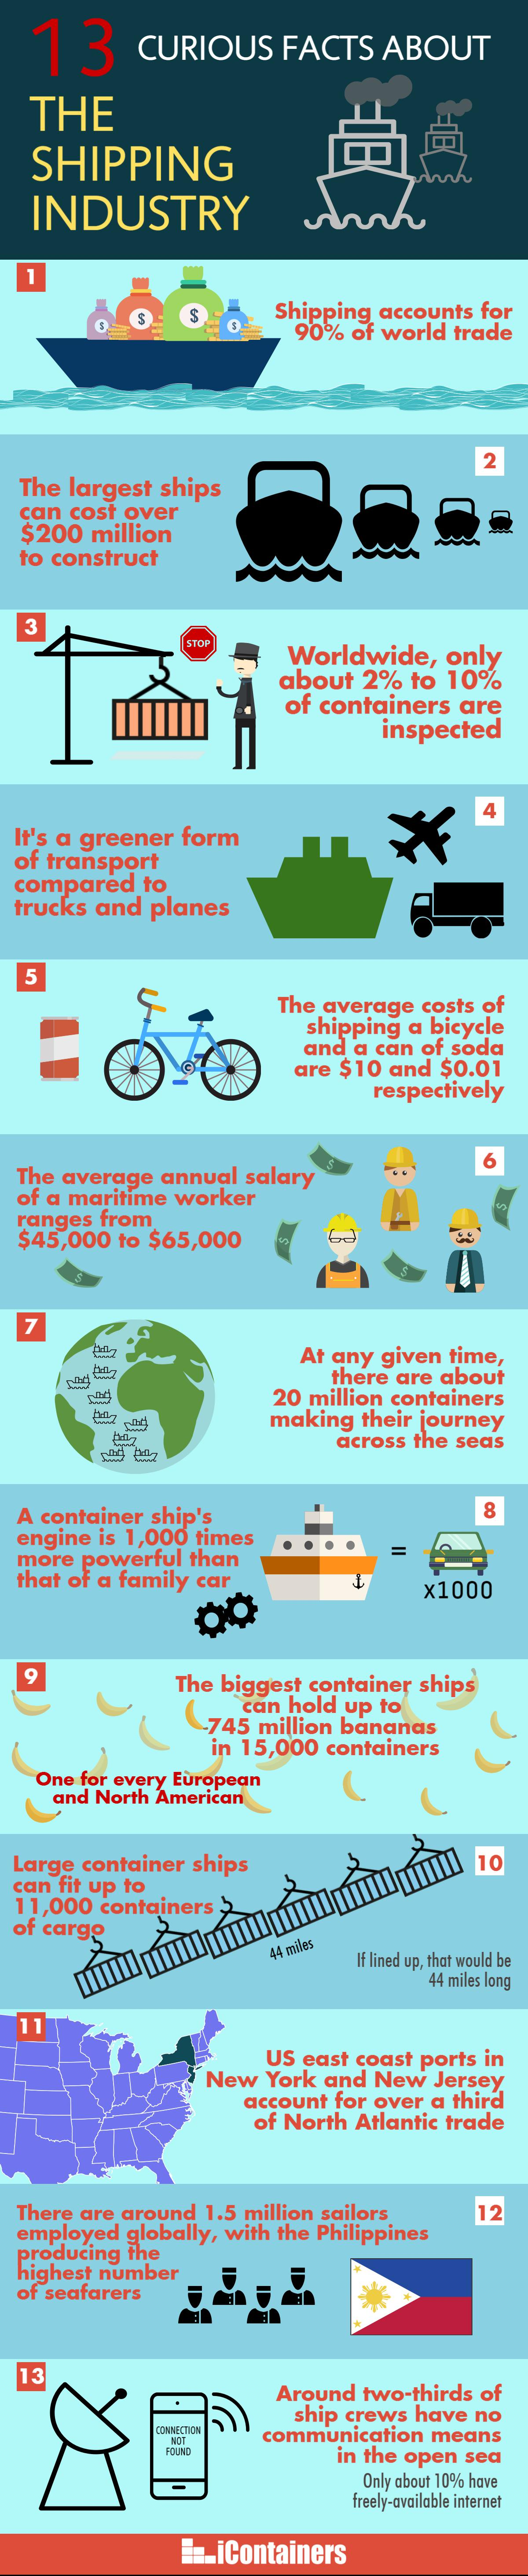 13 curious facts about the shipping industry infographic